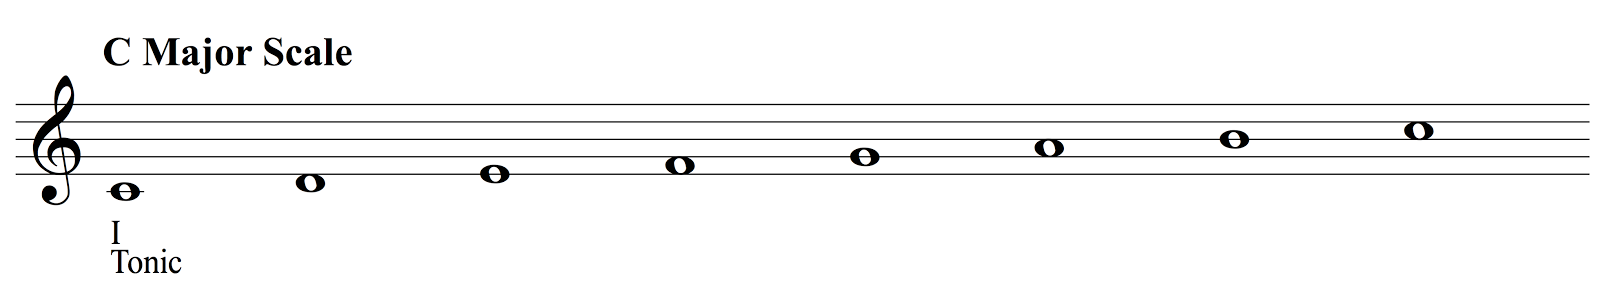 C Major Scale With Tonic Shown